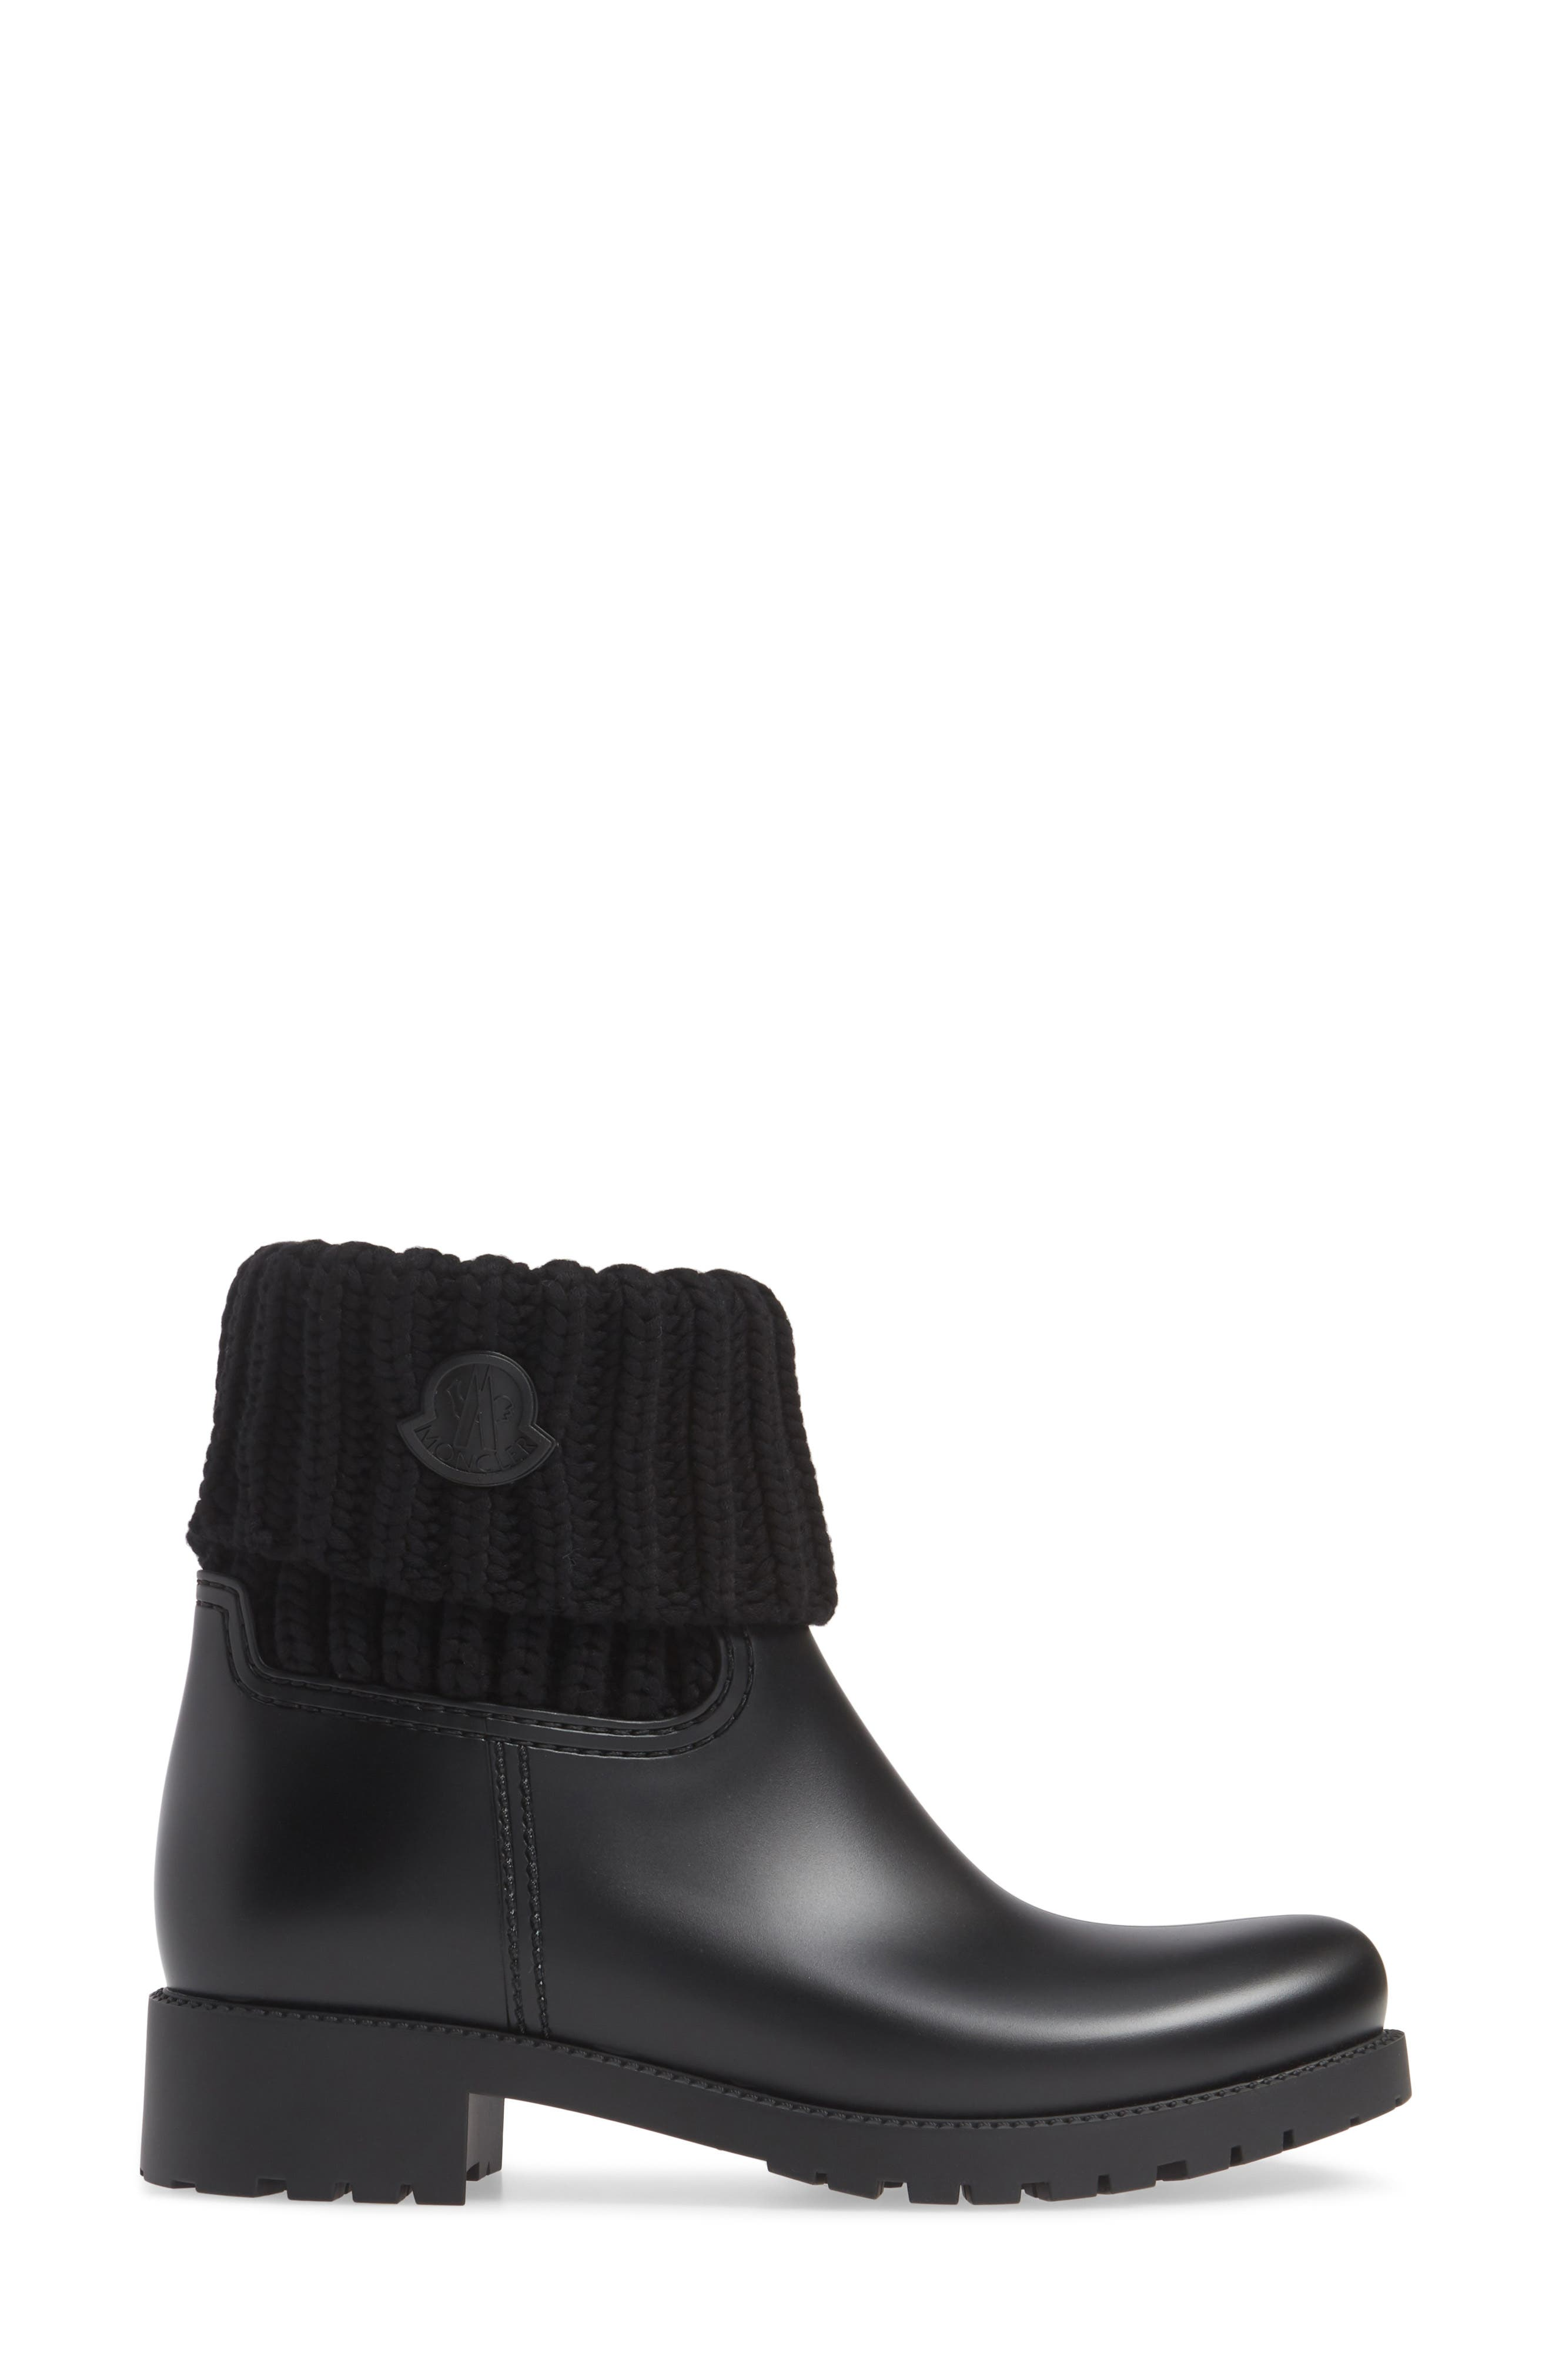 MONCLER, Ginette Stivale Knit Cuff Water Resistant Rain Boot, Alternate thumbnail 3, color, BLACK